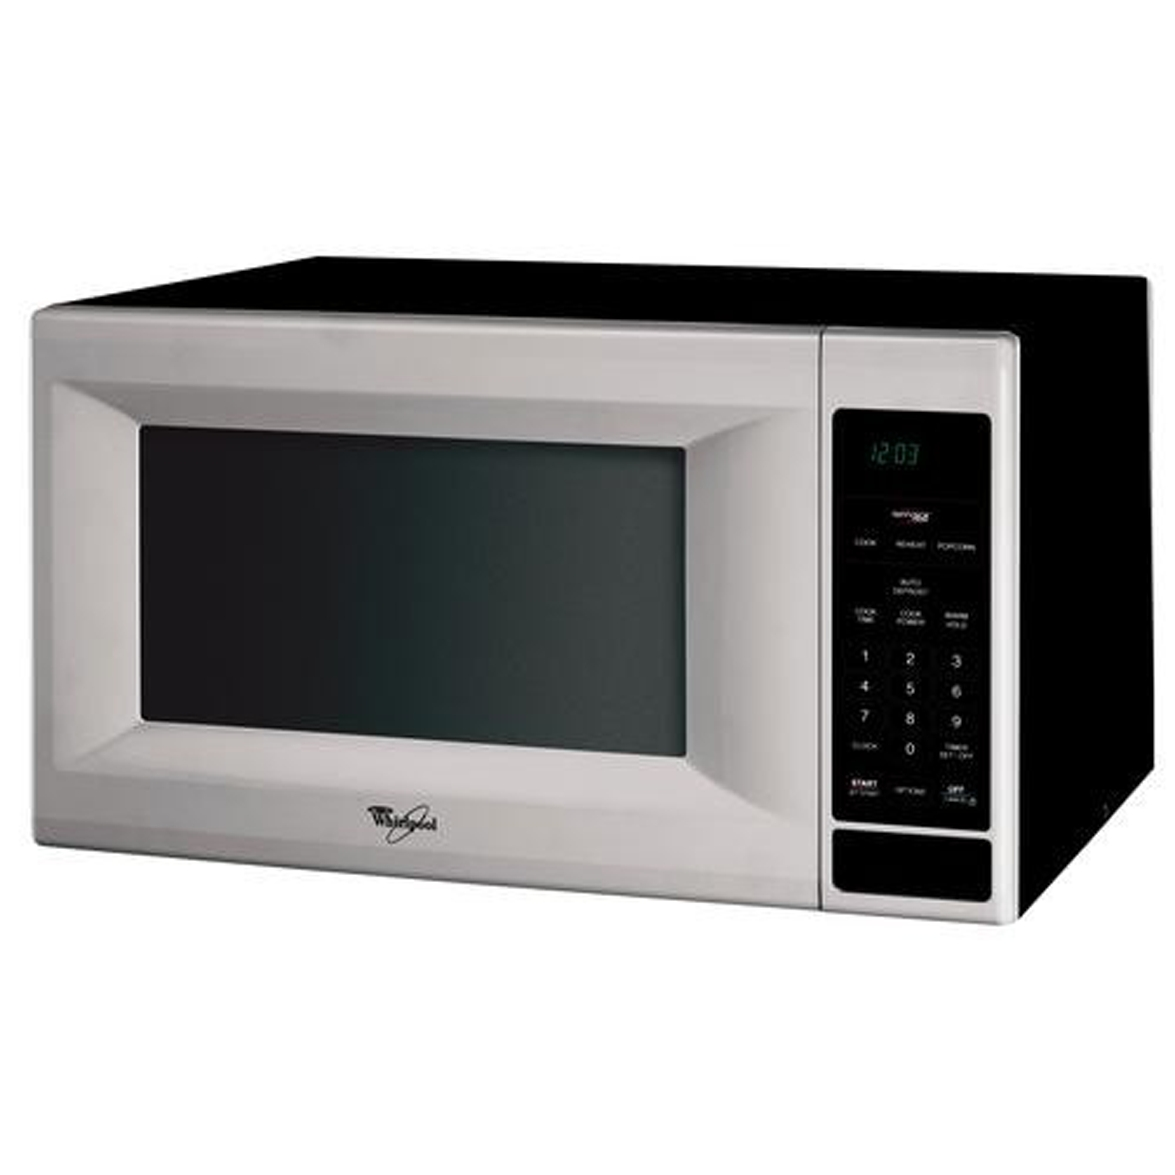 Whirlpool Mt4155sps 1 5 Cu Ft Countertop Microwave Oven